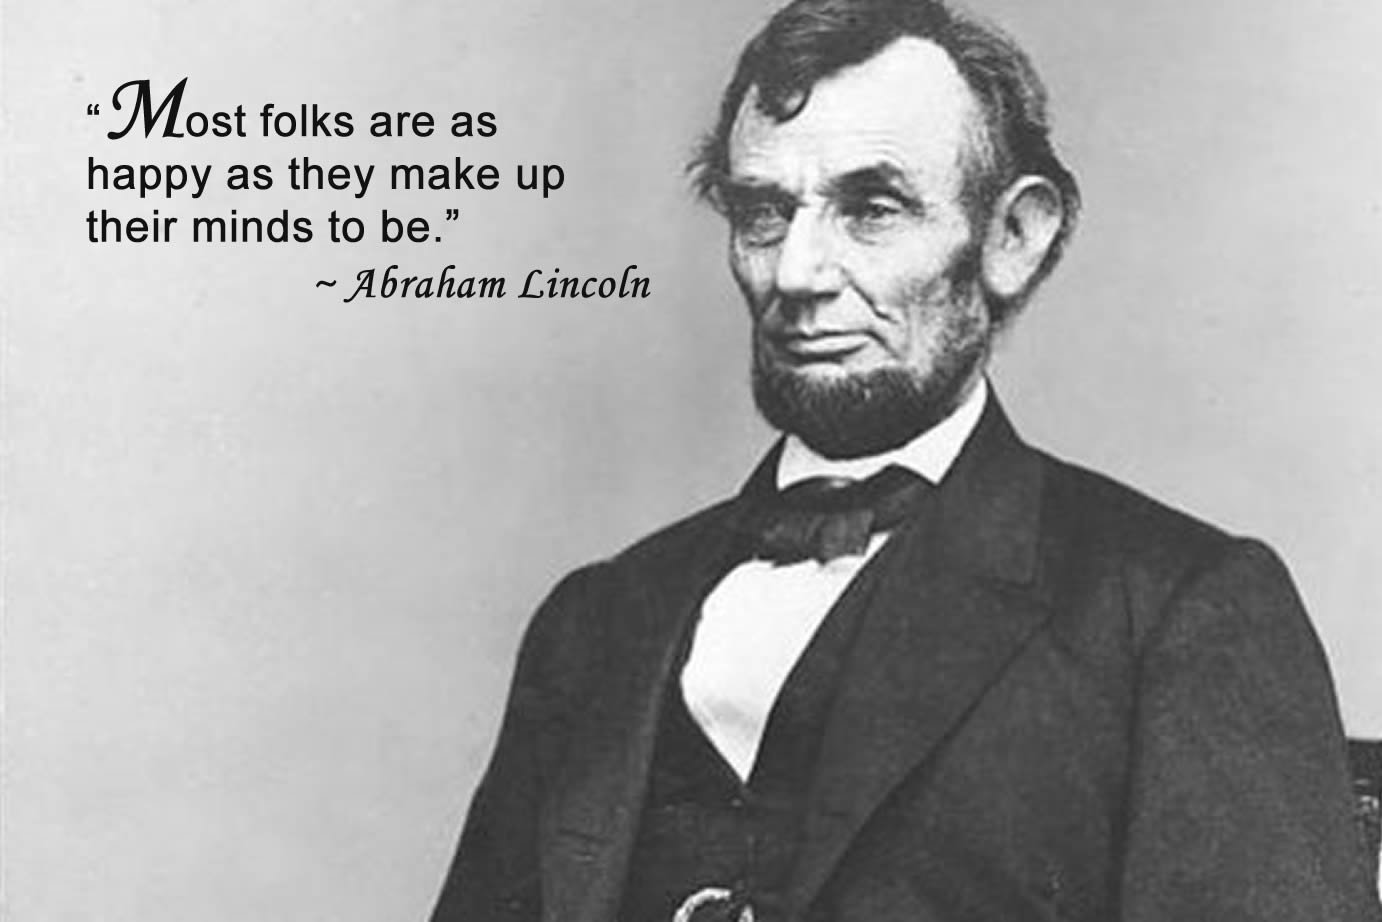 Why did Abraham Lincoln work to end slavery?